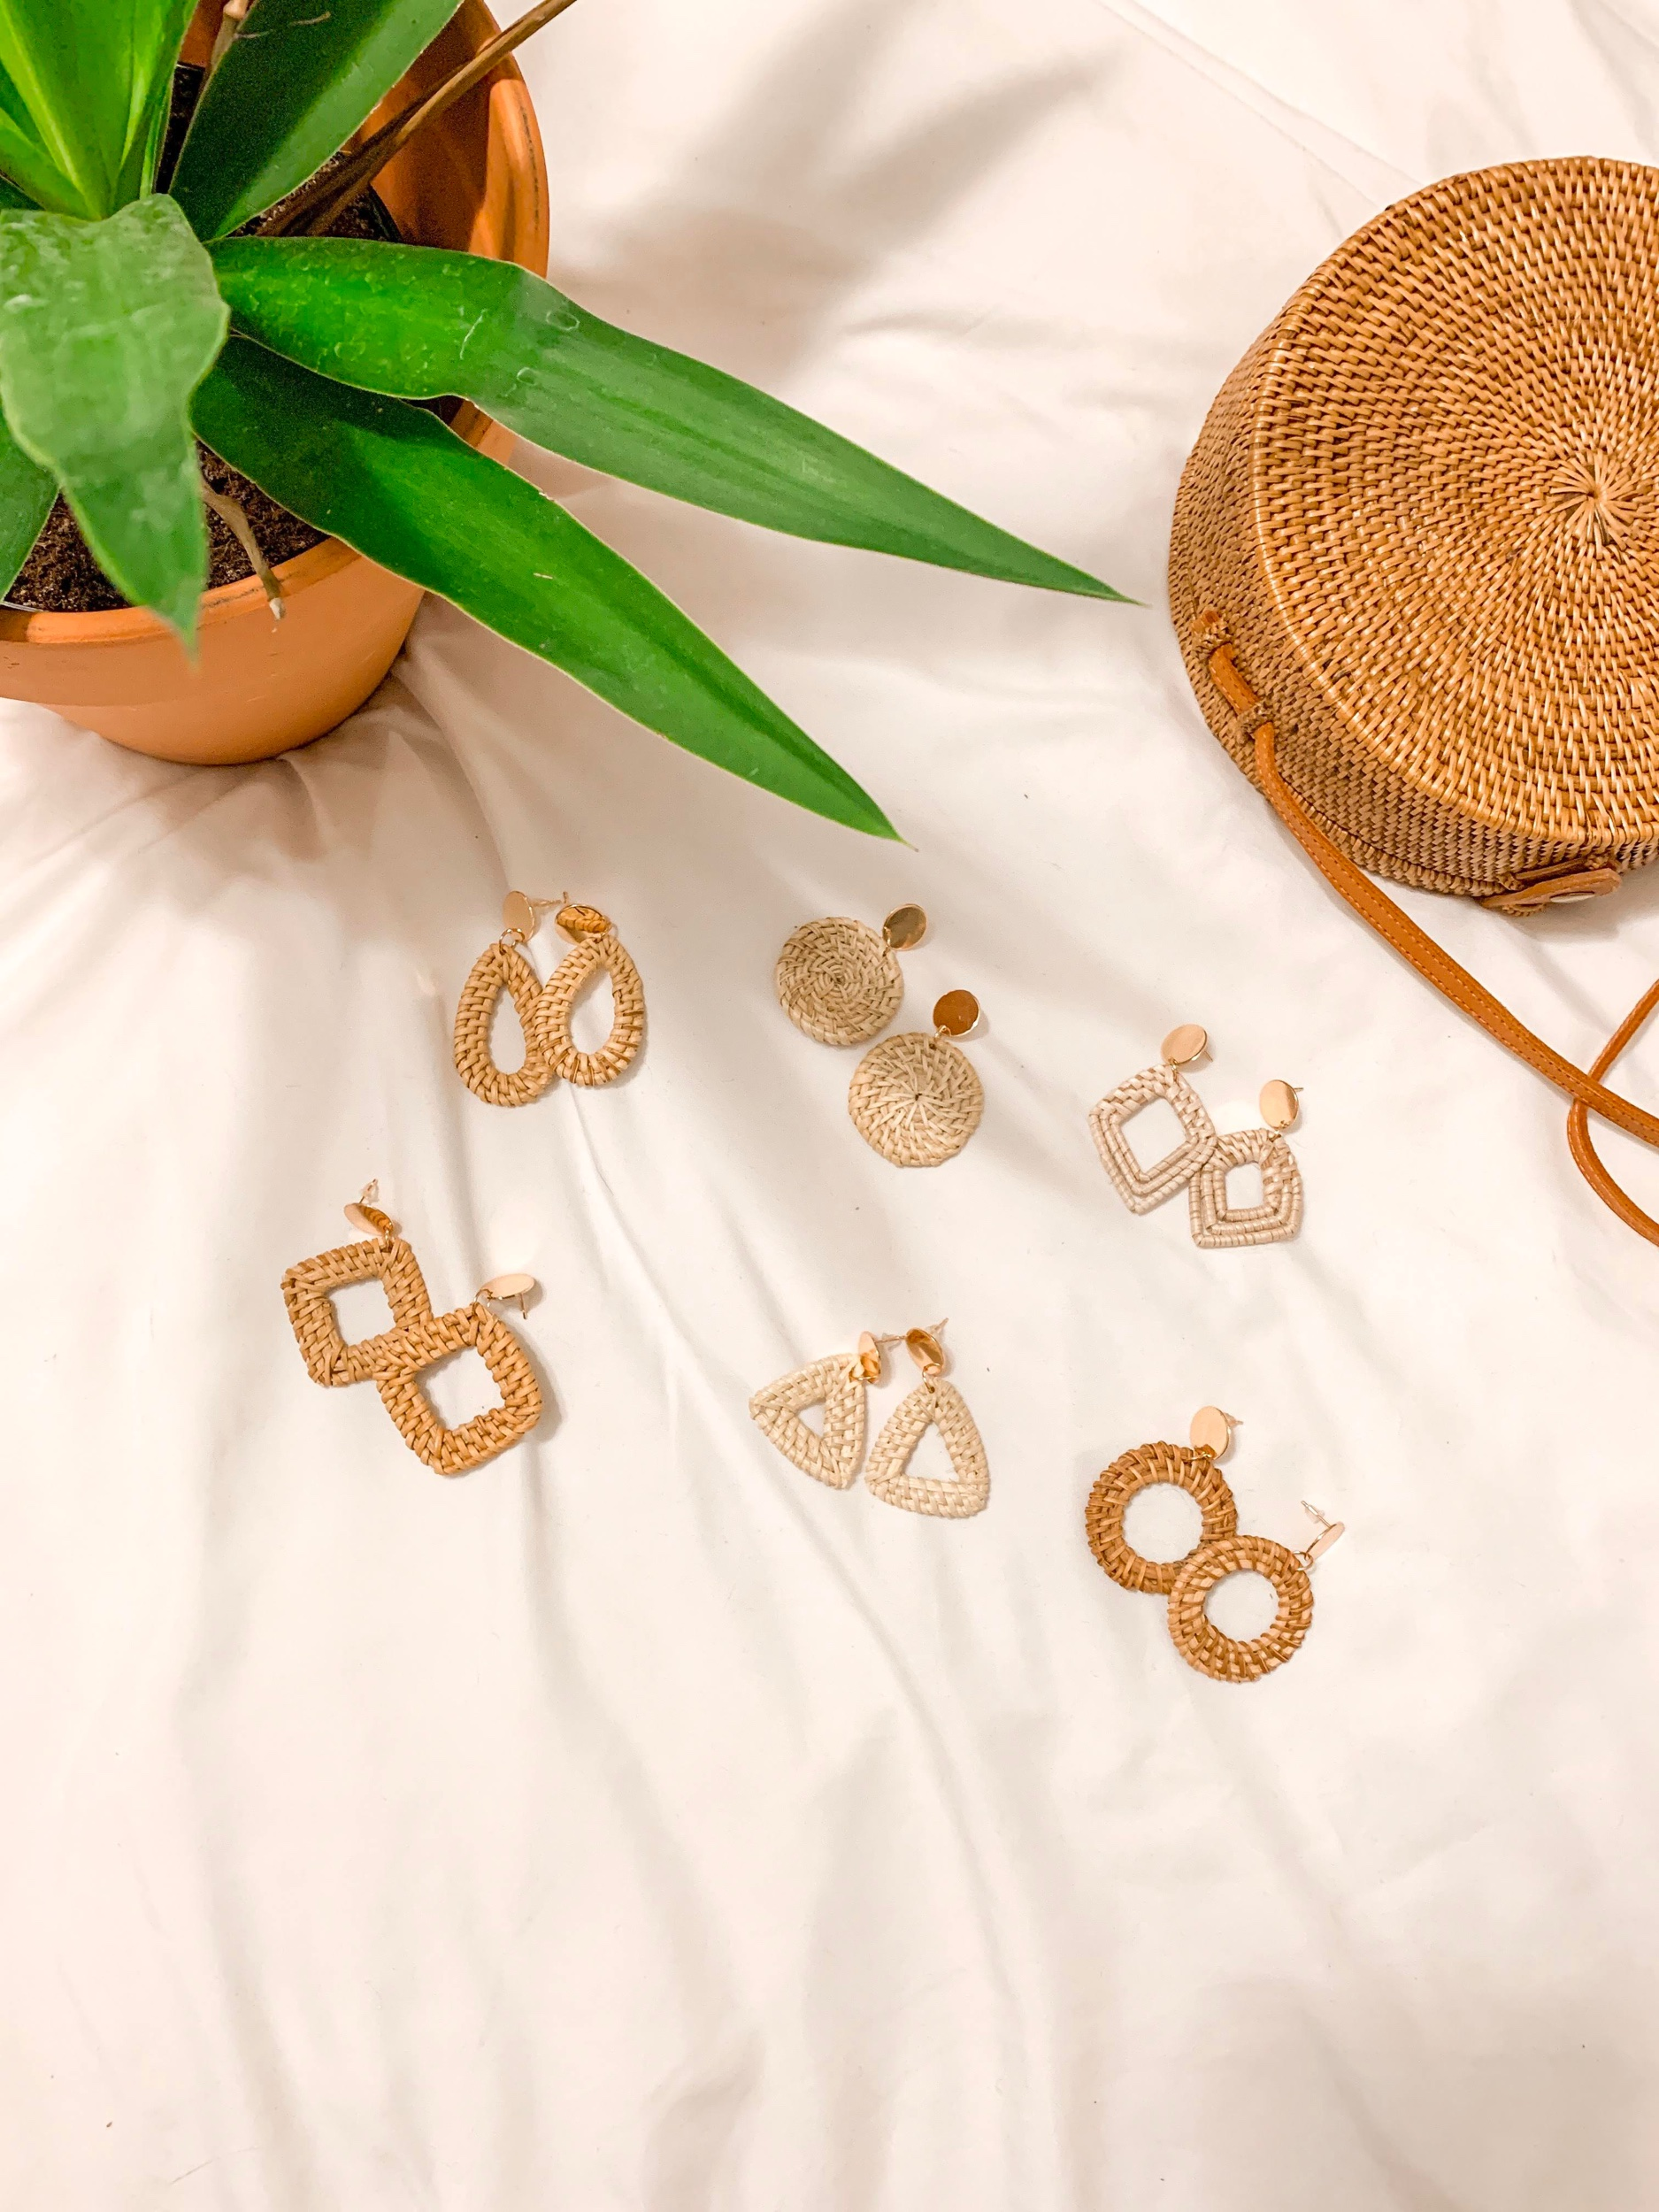 Six sets  of rattan seagrass earrings for $13! They have gold posts and all come in different colors and styles. The perfect summer accessory!